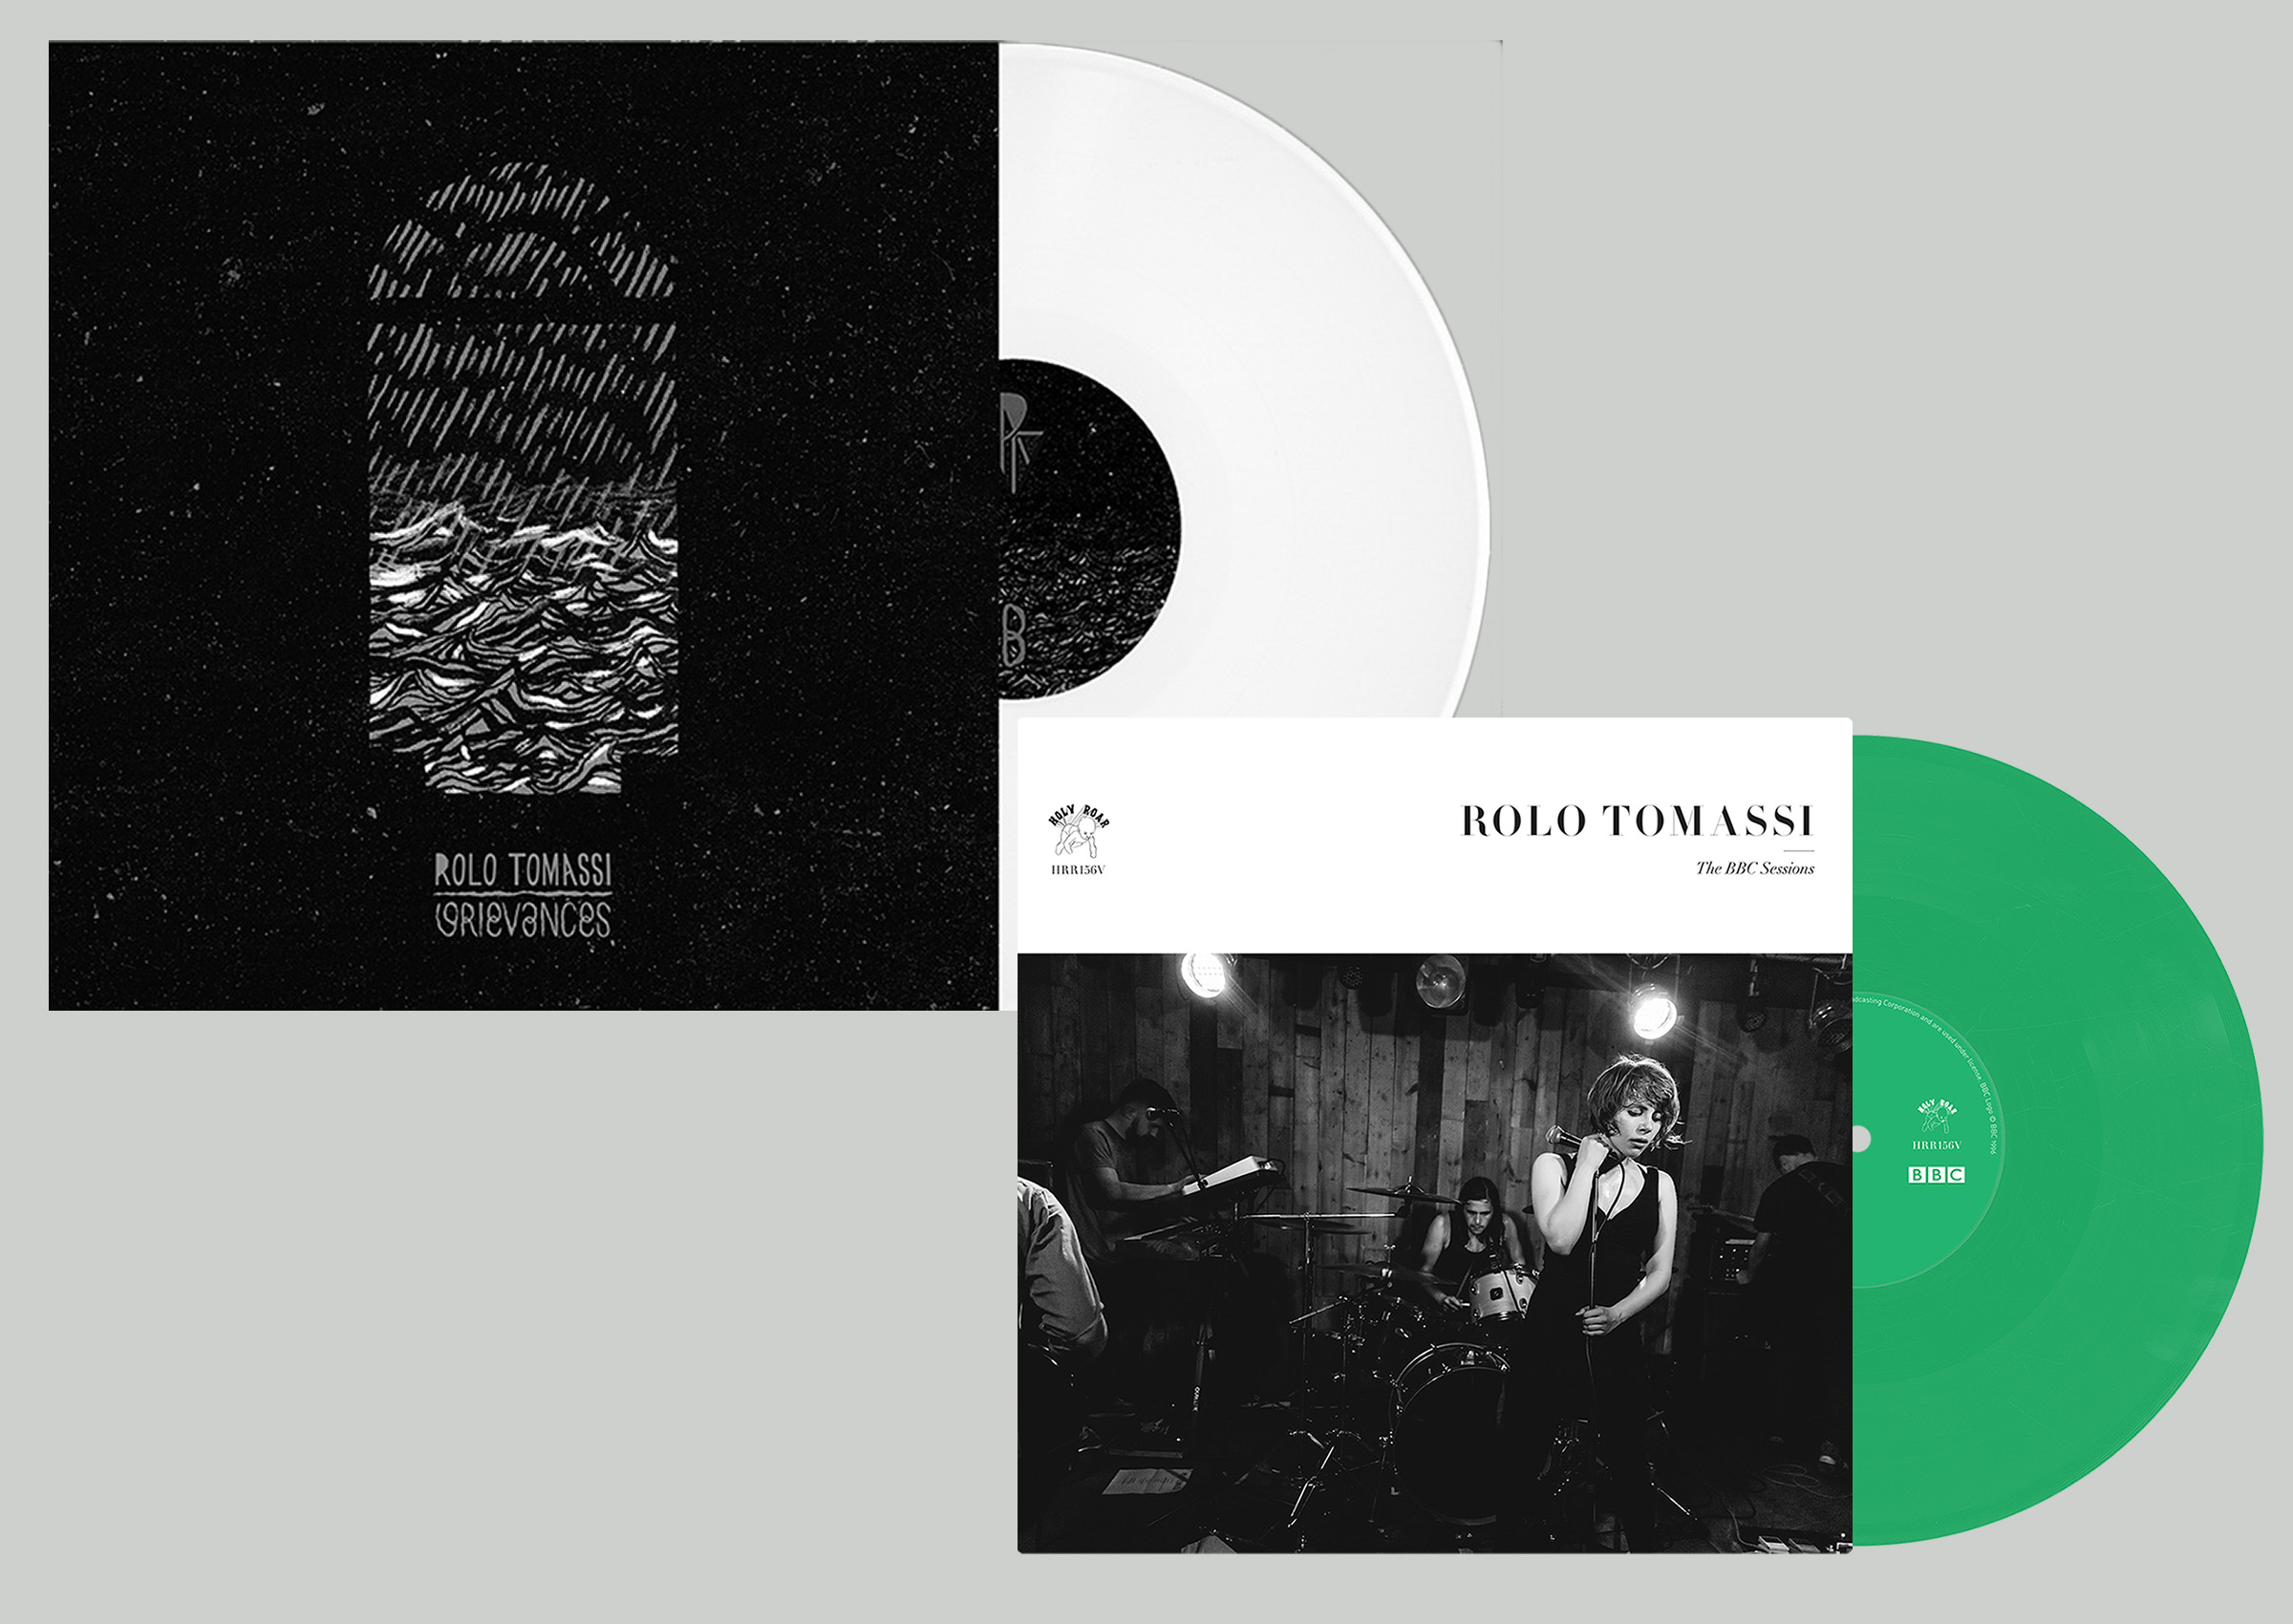 Rolo Tomassi - BBC Sessions + Grievances vinyl bundle